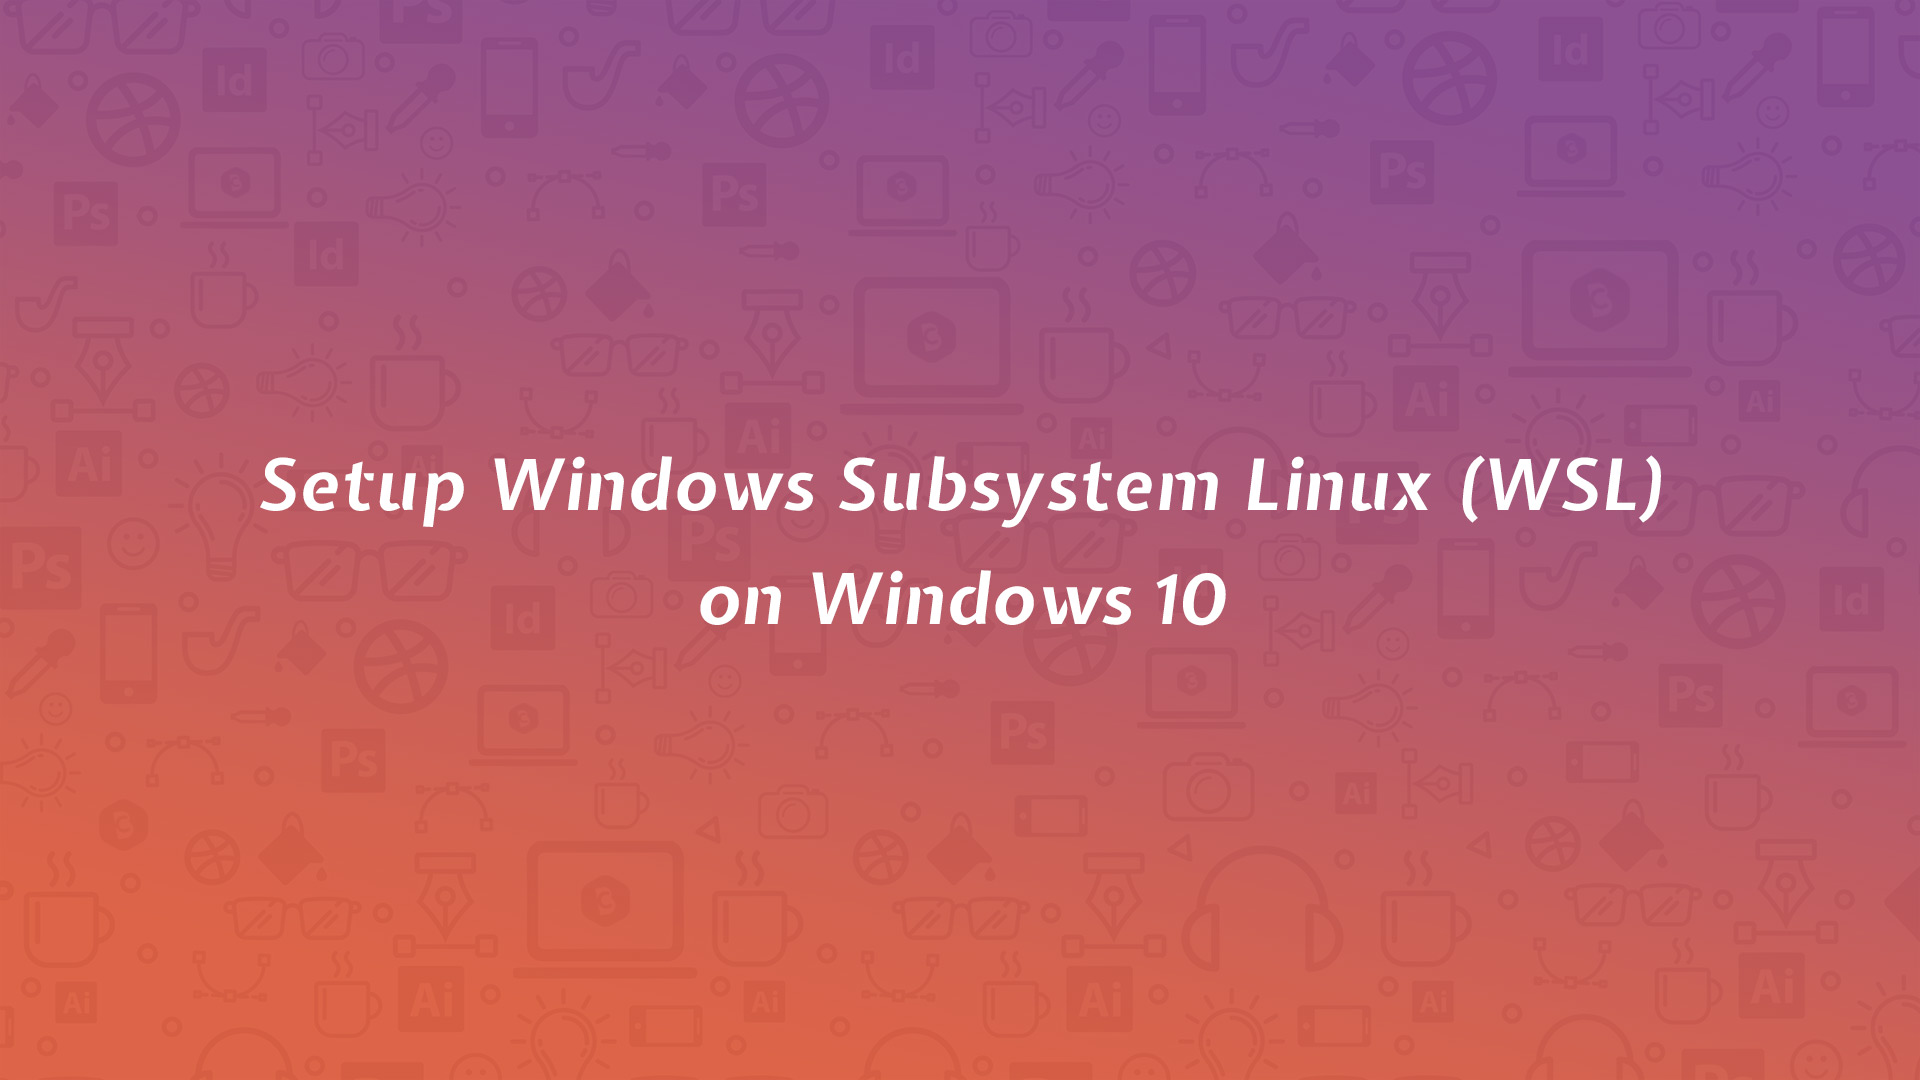 Setup Windows Subsystem Linux (WSL) on Windows 10 - Code Briefly